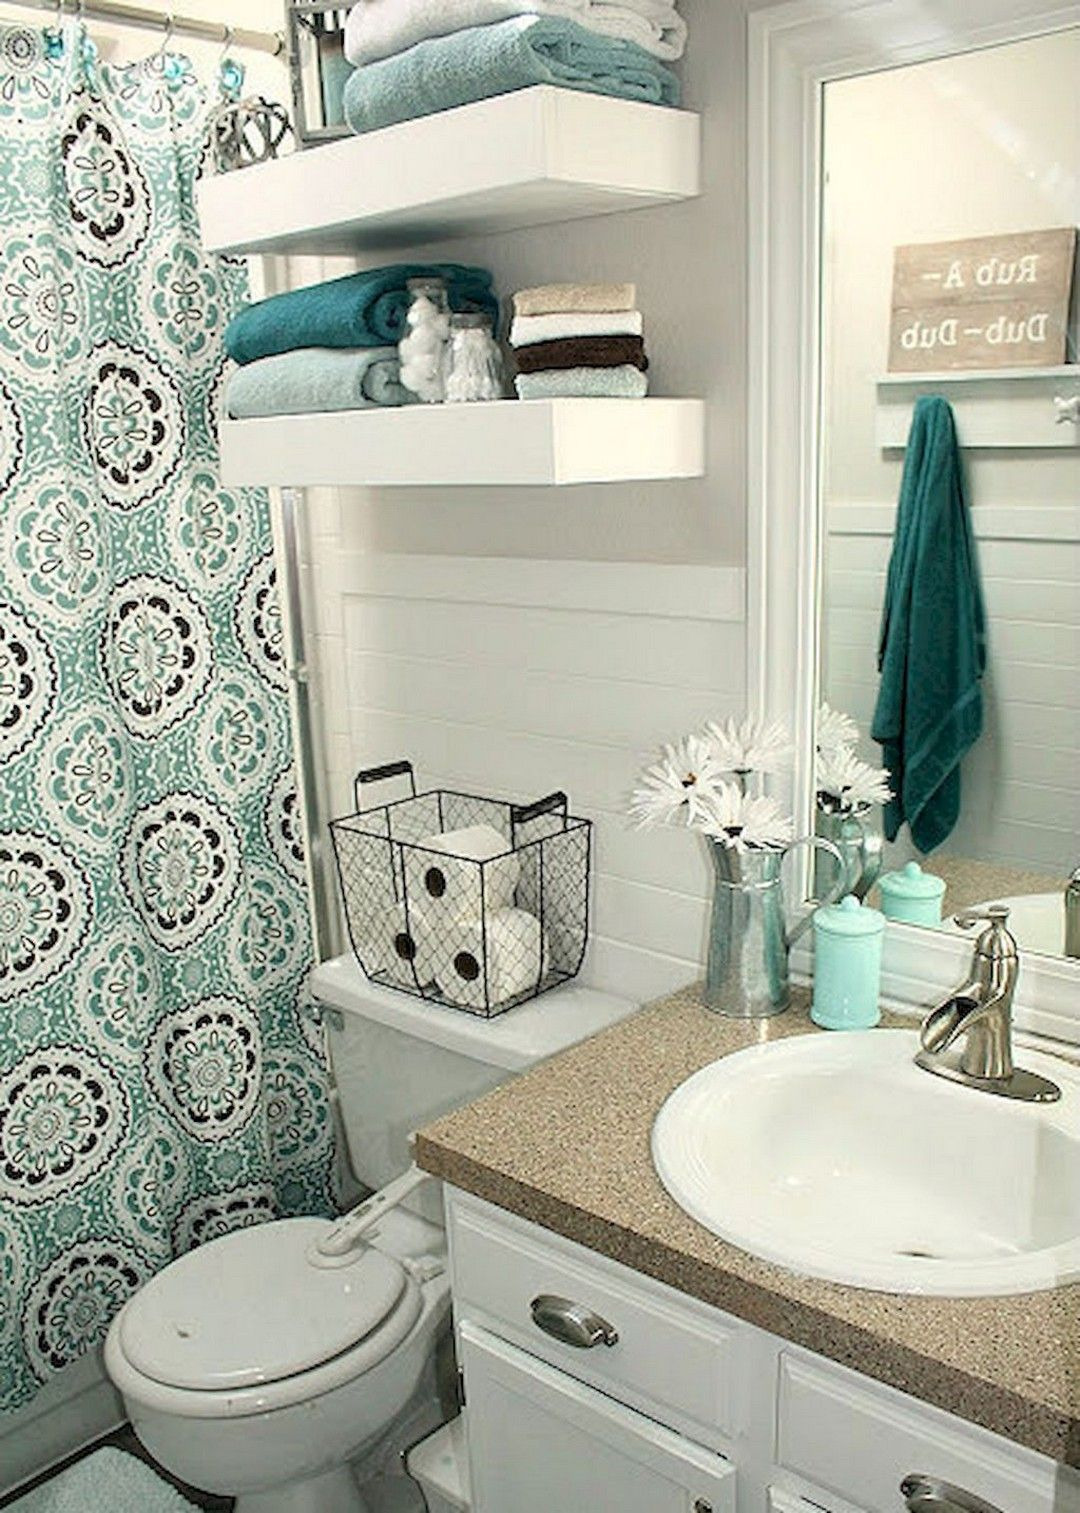 Decorating Ideas for Bathrooms On A Budget Awesome Diy Apartment Decorating Ideas On A Bud